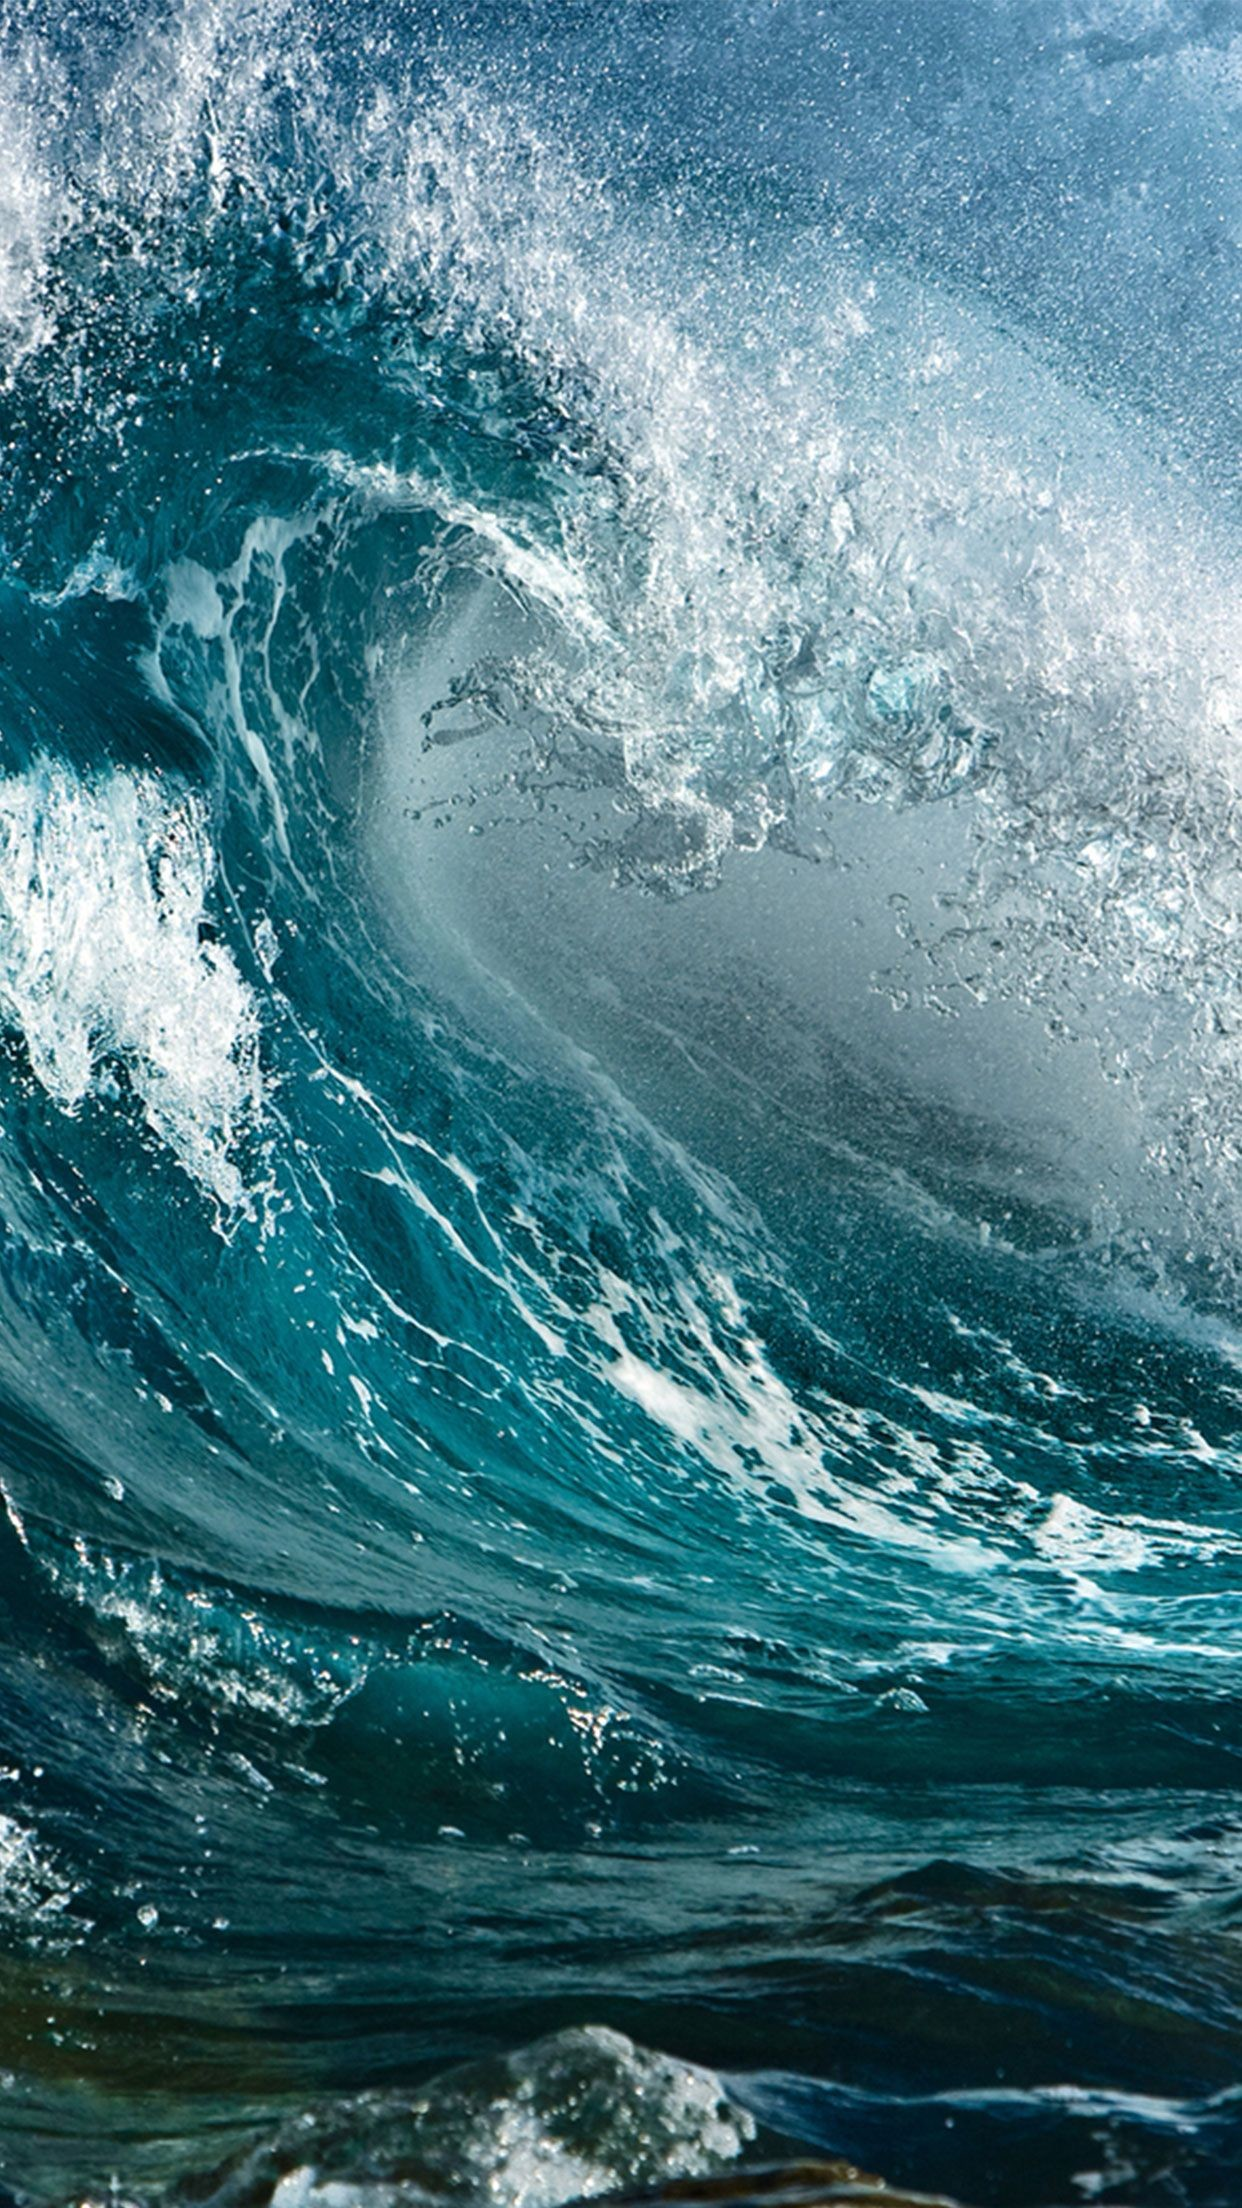 Ocean Wave Iphone Wallpaper 79 Images